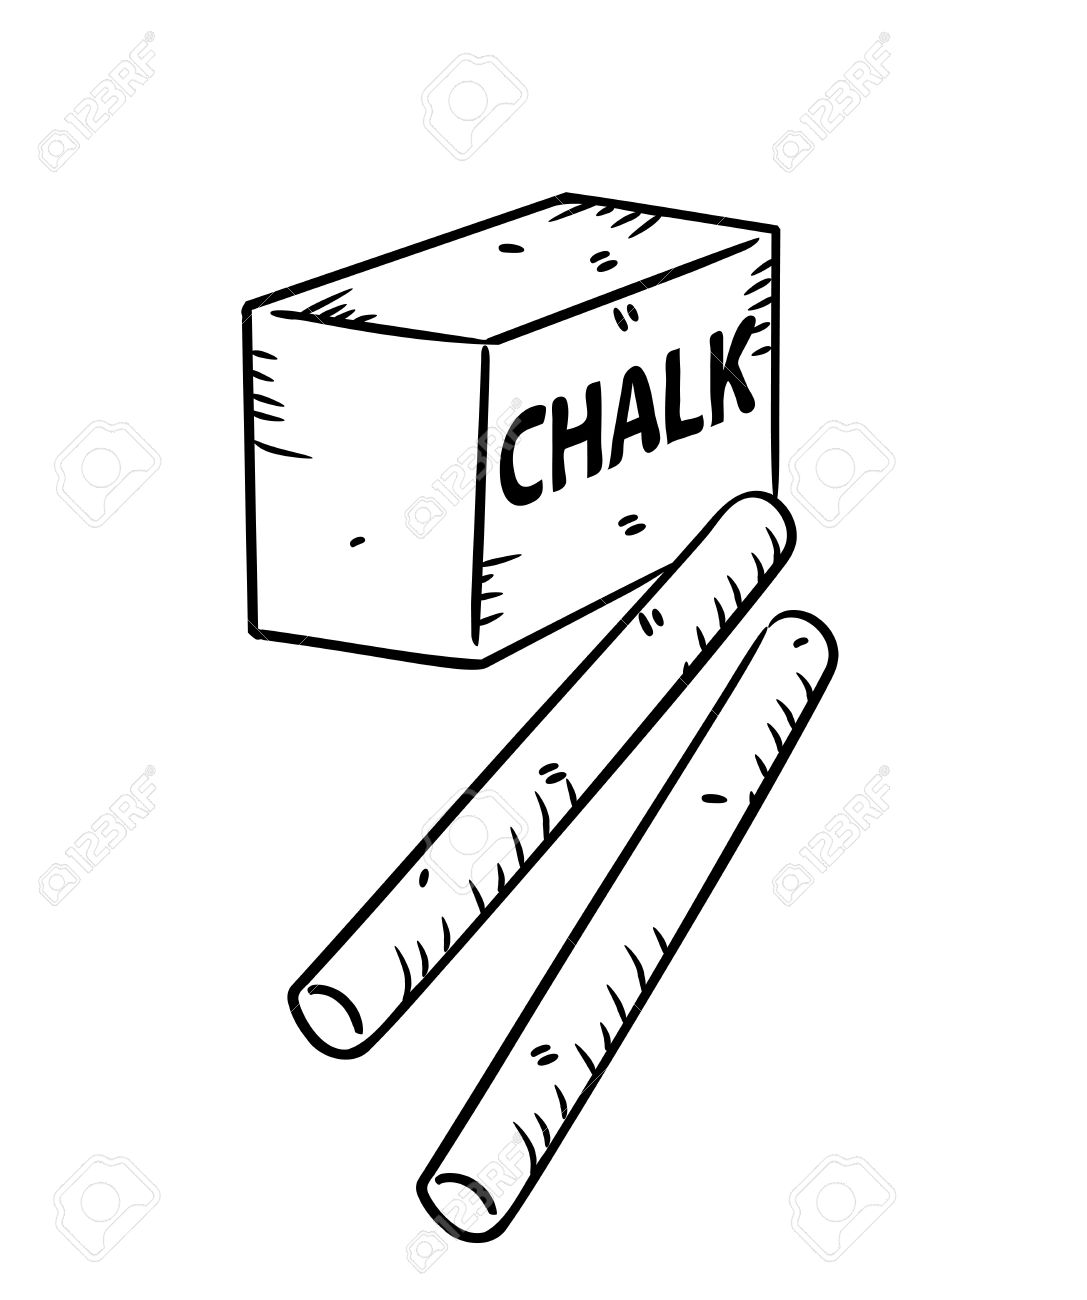 Chalk clipart chalk stick. White drawing at getdrawings